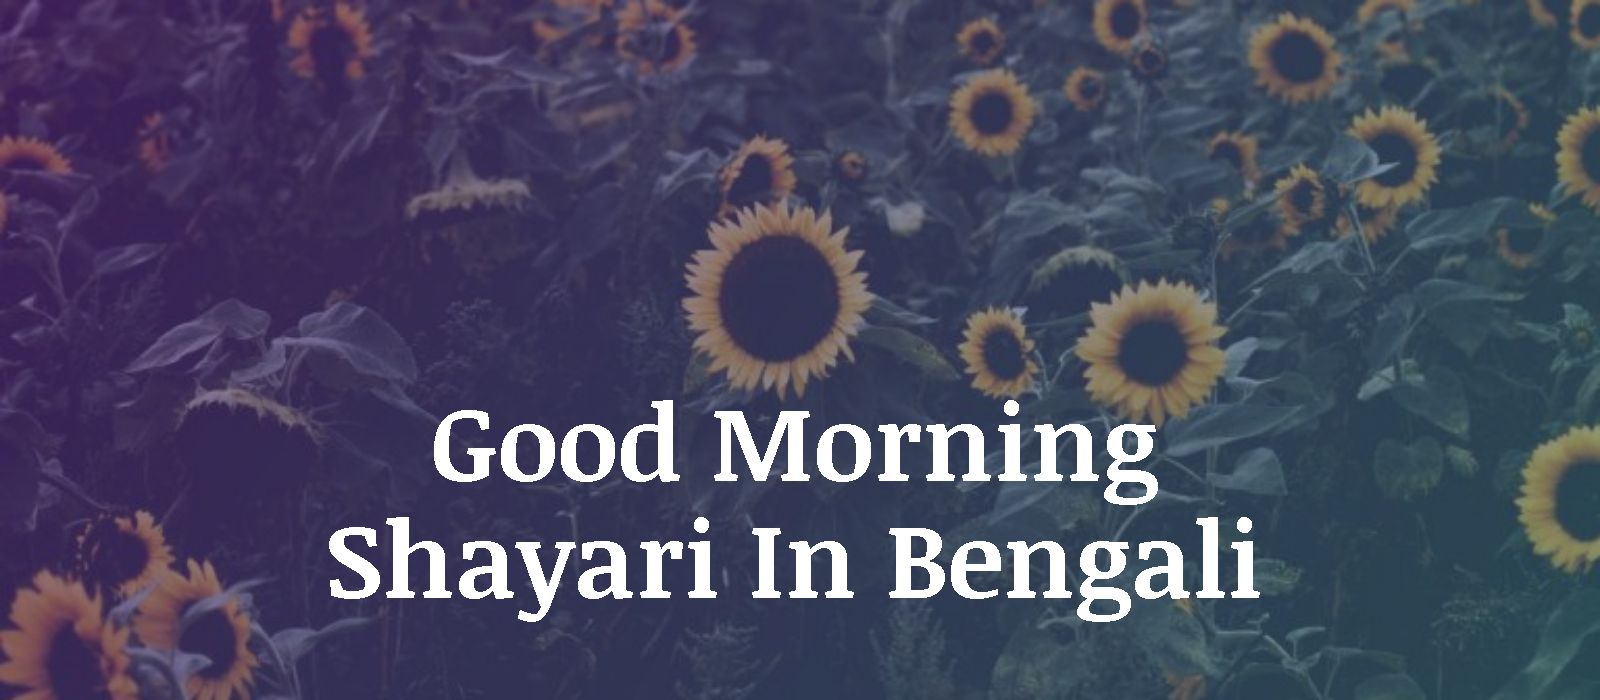 Good Morning Shayari In Bengali